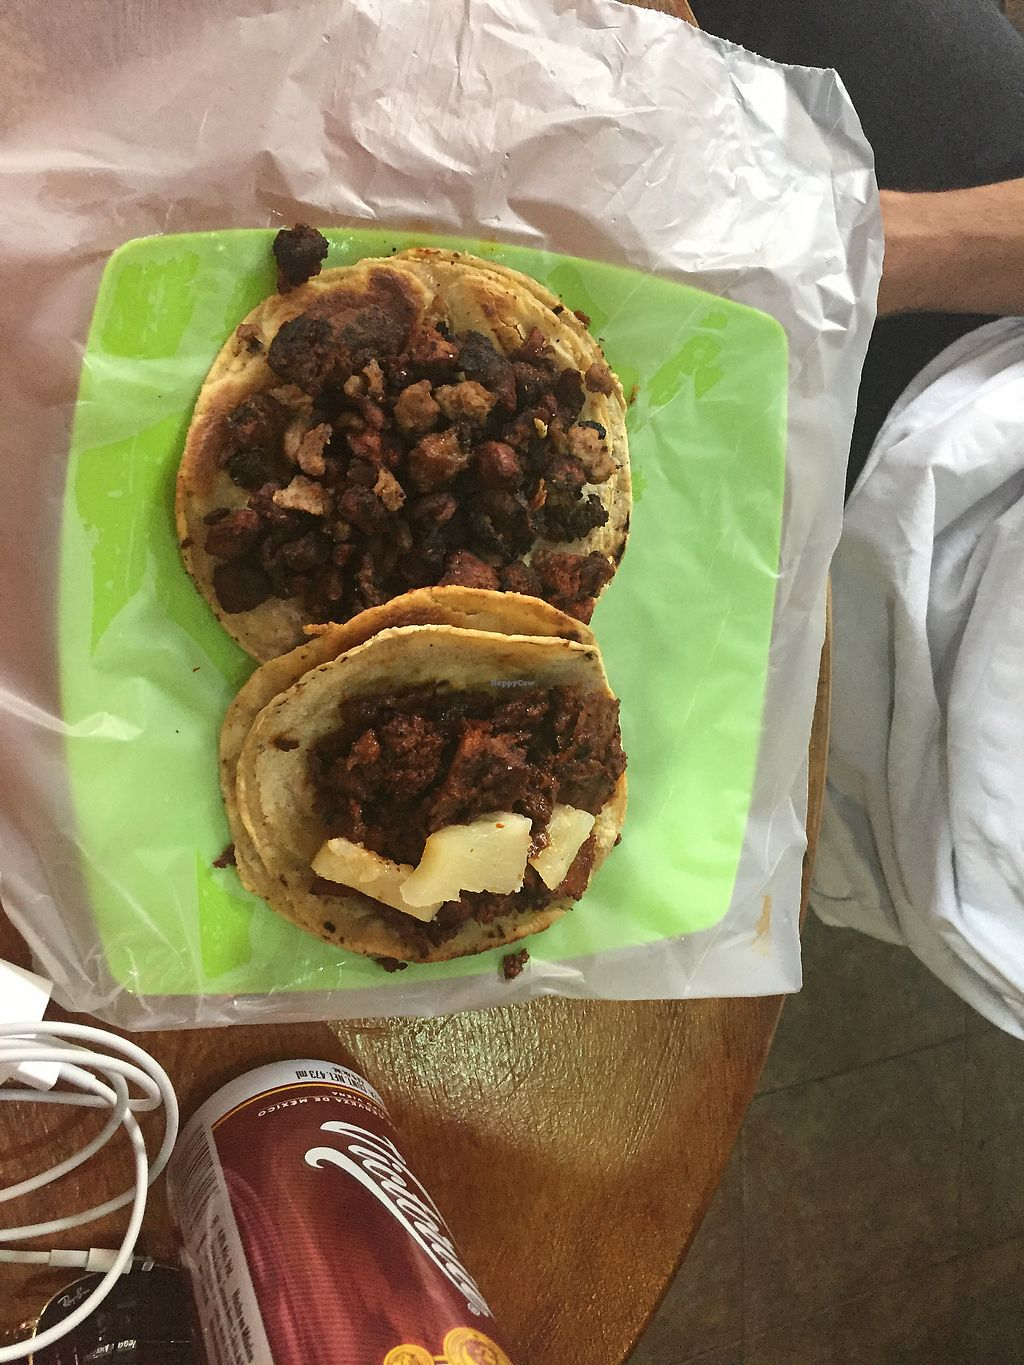 """Photo of Vegan Pa' Cá'  by <a href=""""/members/profile/SinzianaK"""">SinzianaK</a> <br/>Pastor and chorizo tacos <br/> December 22, 2017  - <a href='/contact/abuse/image/57926/338215'>Report</a>"""